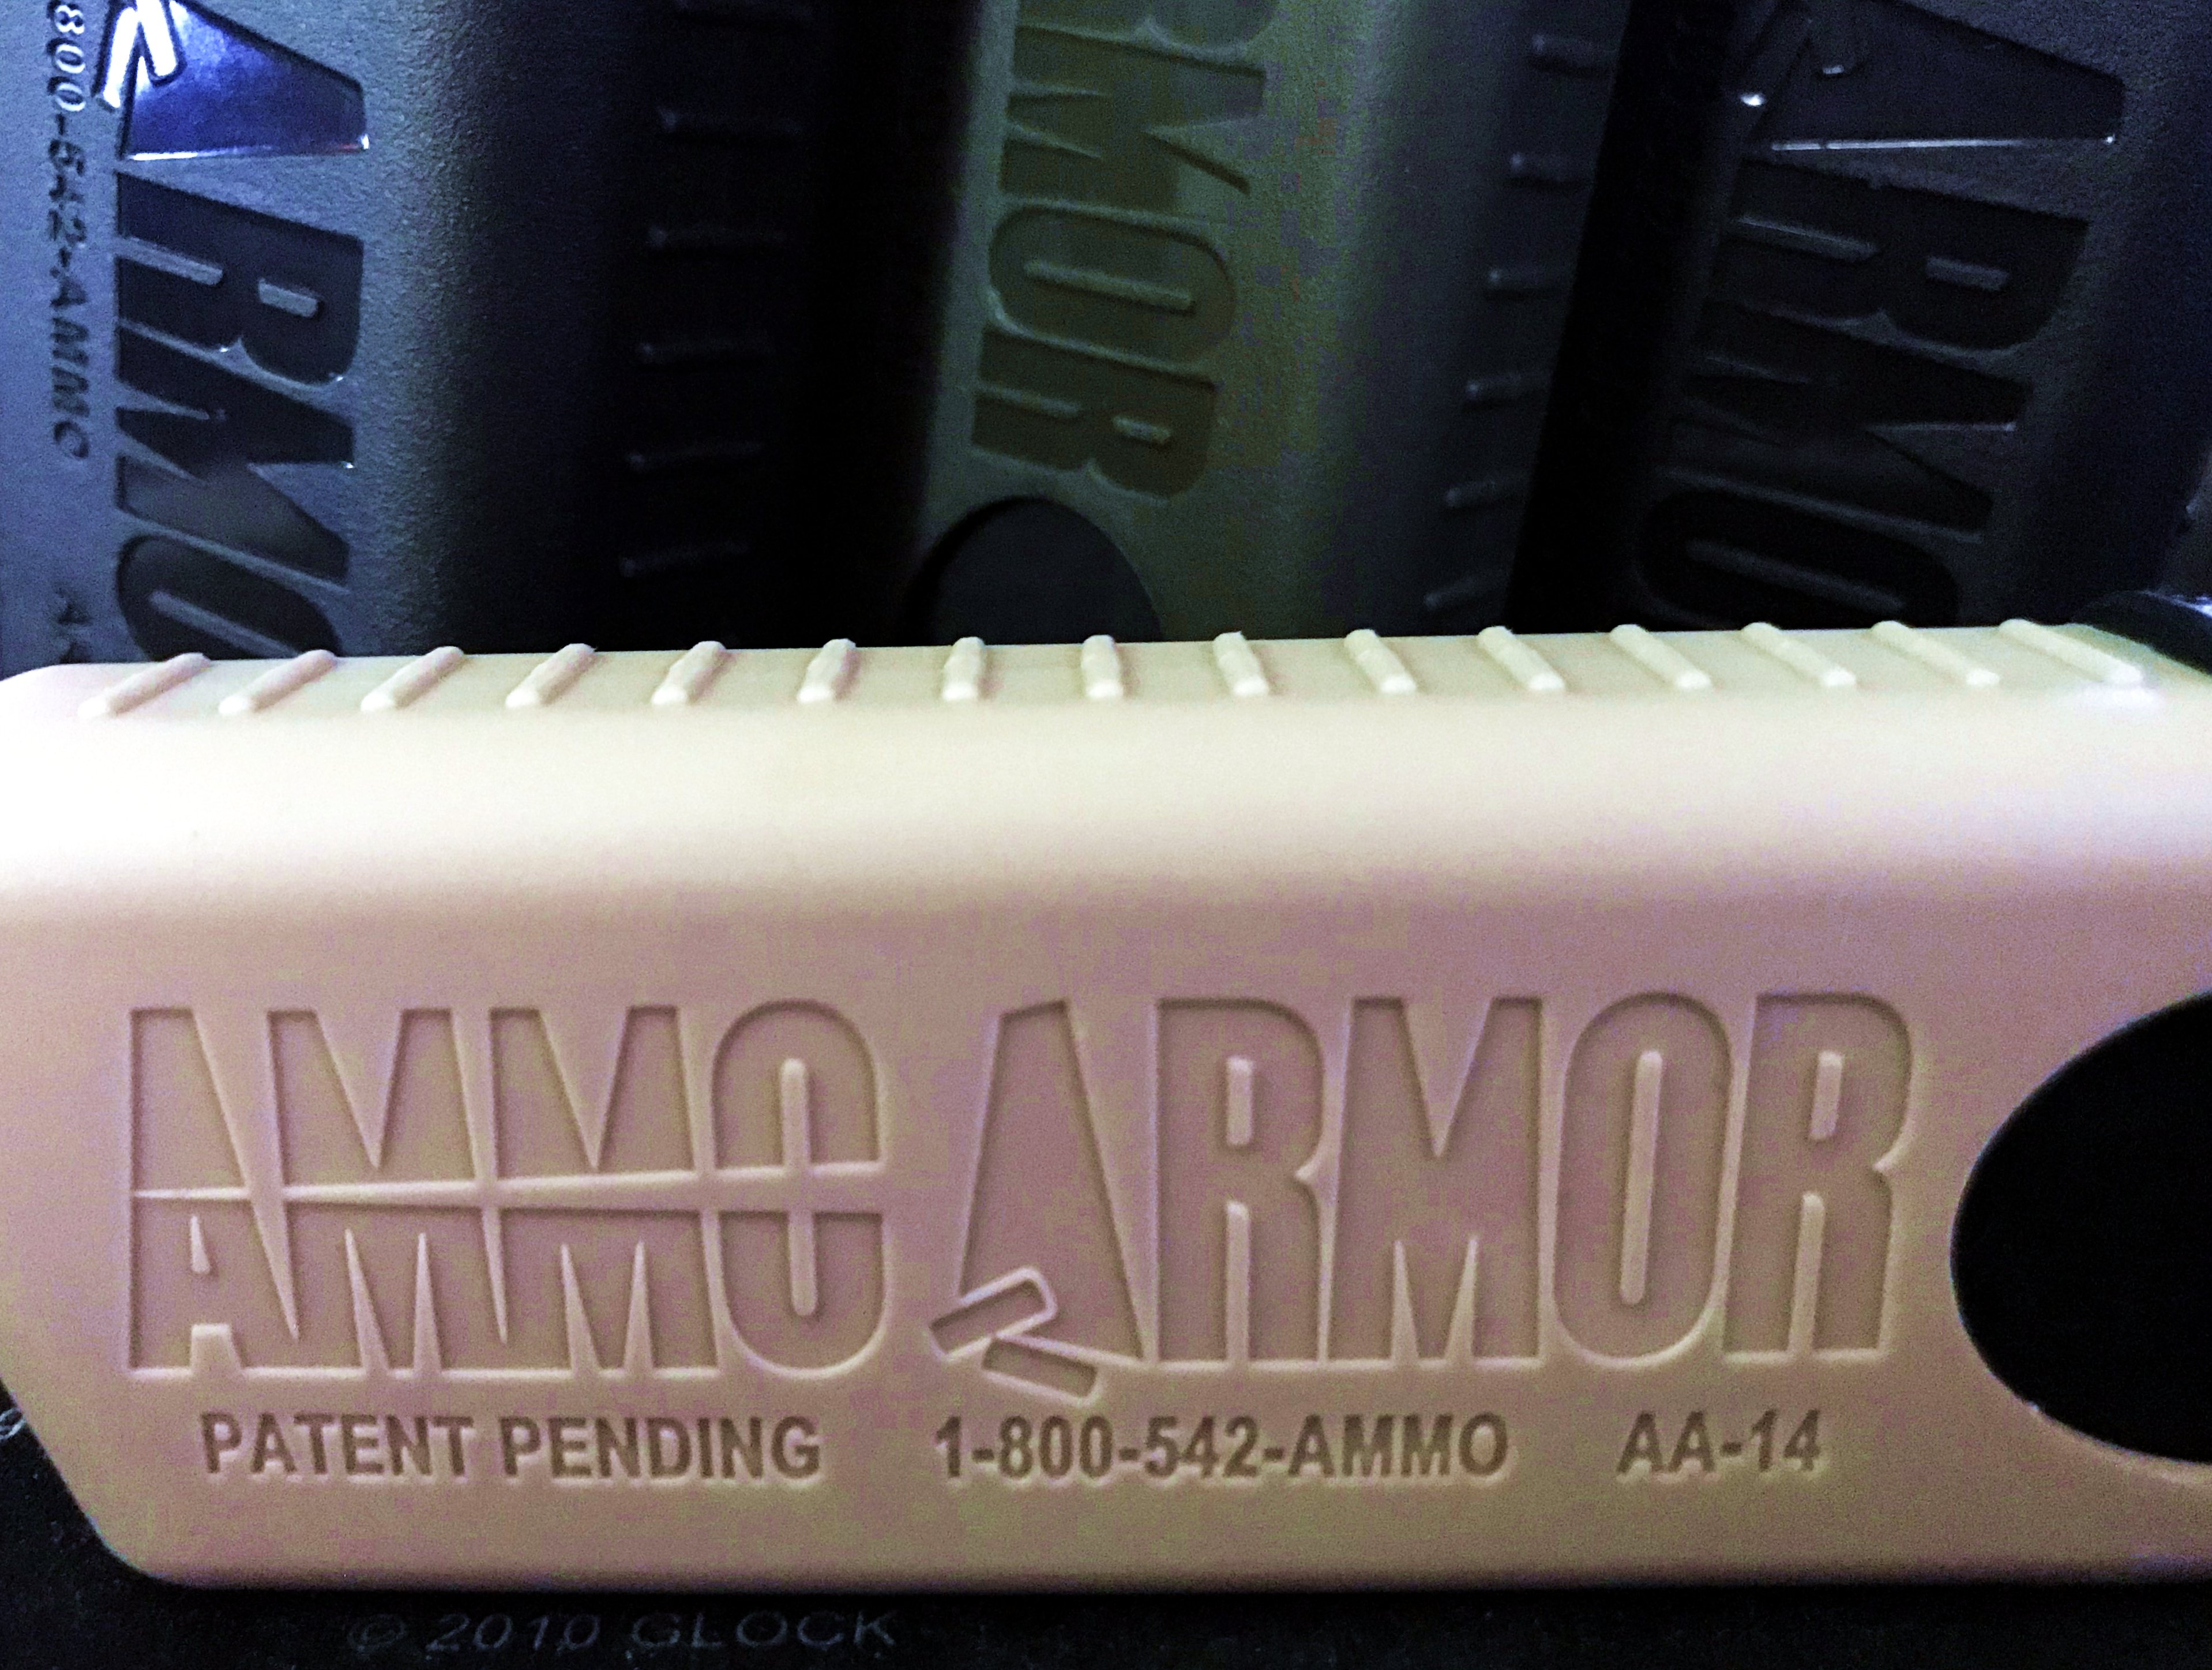 Ammo Armor: Something You Think You Don't Need?